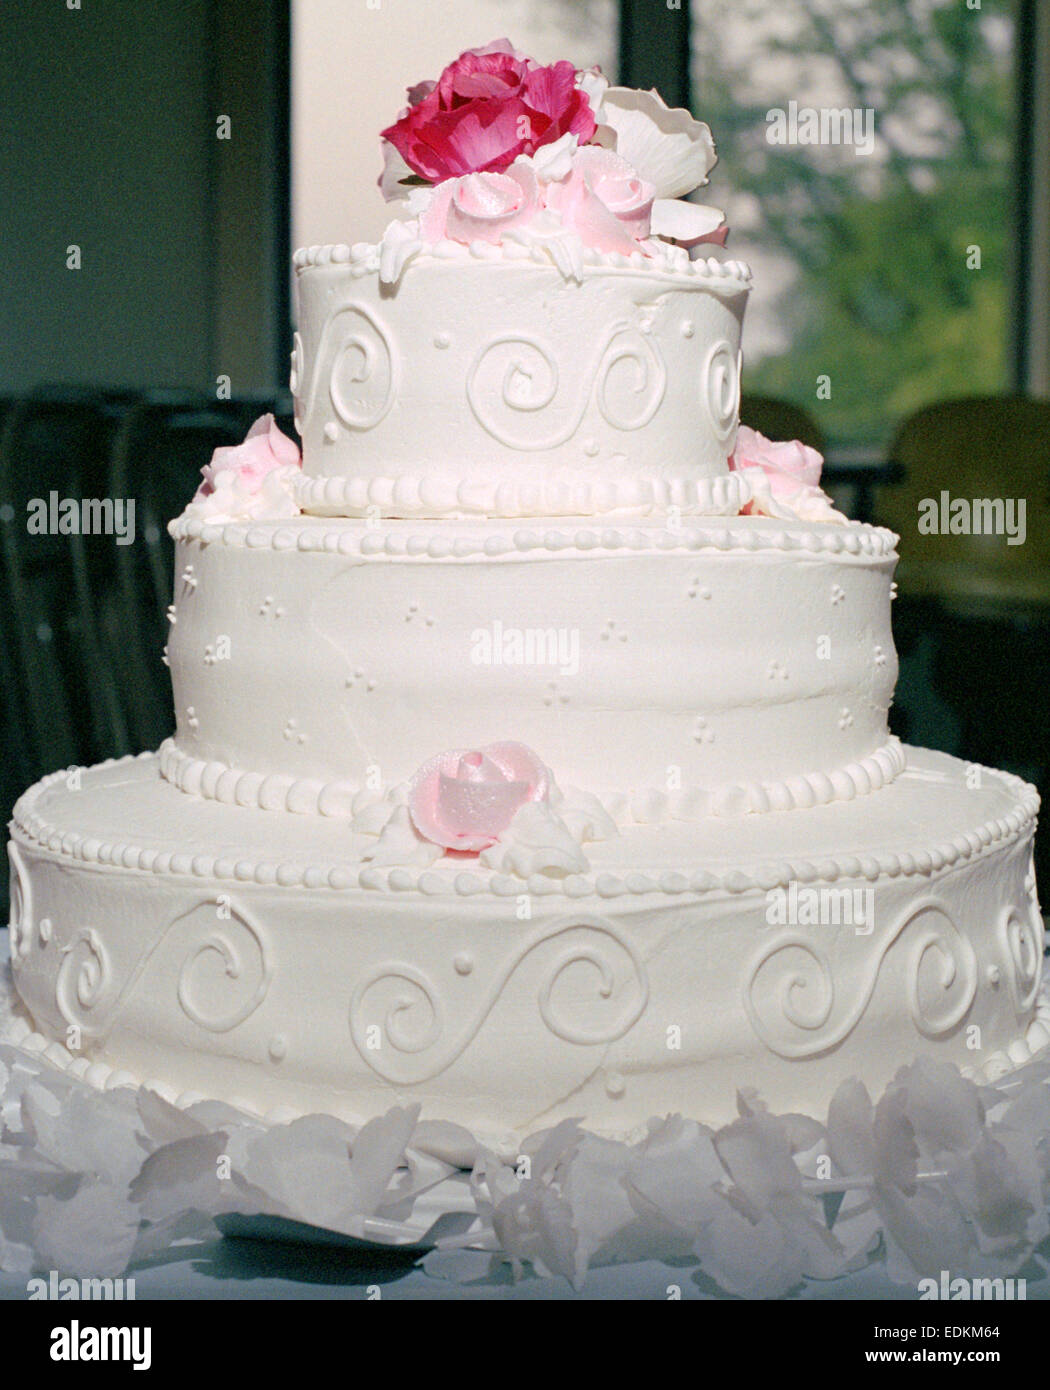 A 3 Tier White Wedding Cake With Pink Roses Stock Photo 77264940